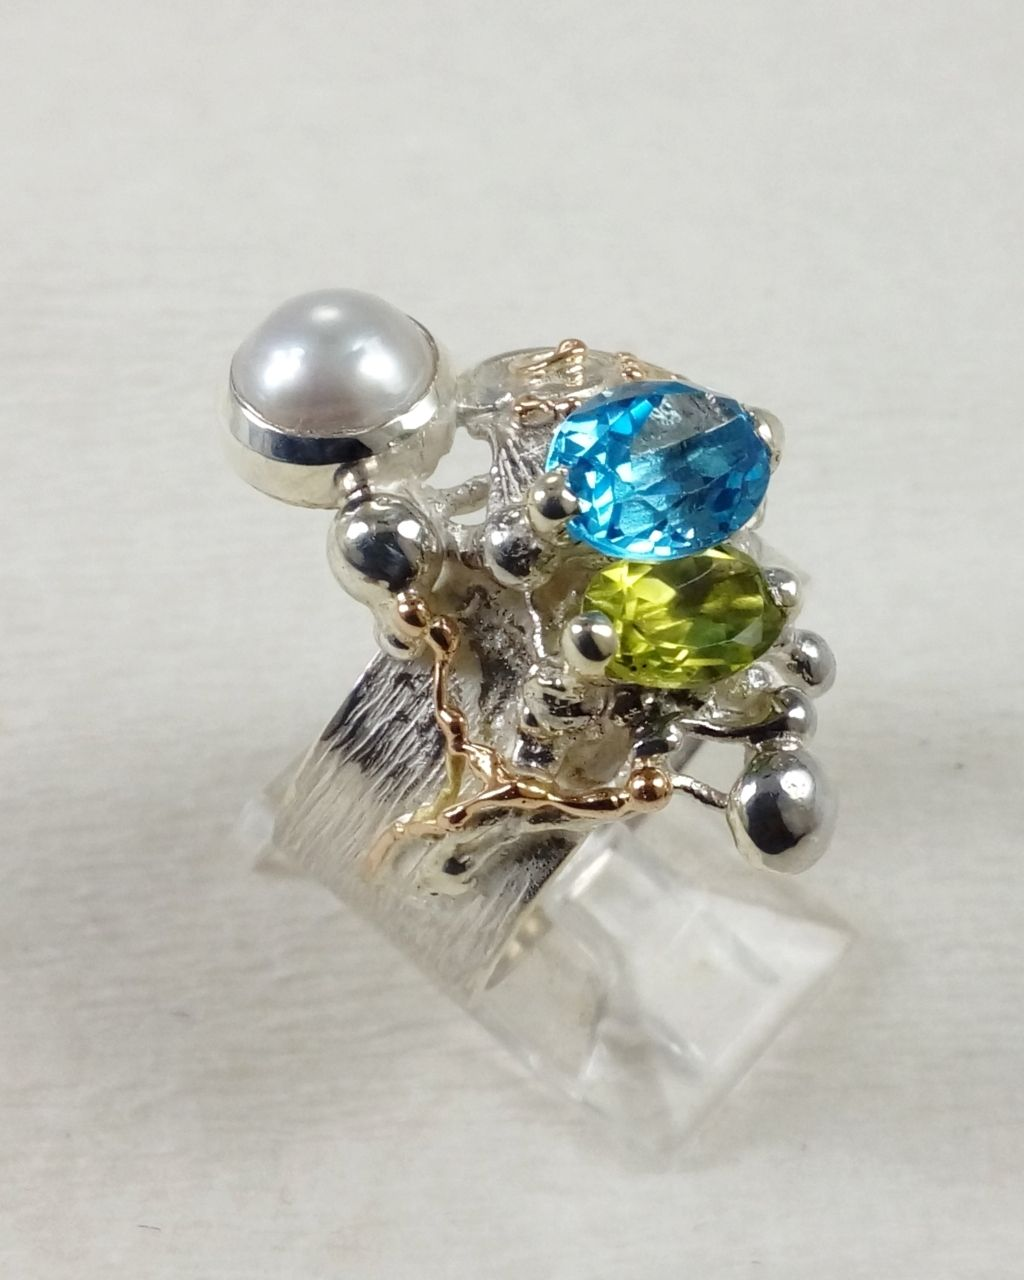 Gregory Pyra Piro ring 3025, jewellery artist in Europe, jewellery maker in Europe, original handcrafted jewellery in Europe, ring with blue topaz and peridot, ring with gemstones and pearl, rings sold in art and craft galleries, handcrafted jewellery made during lockdown